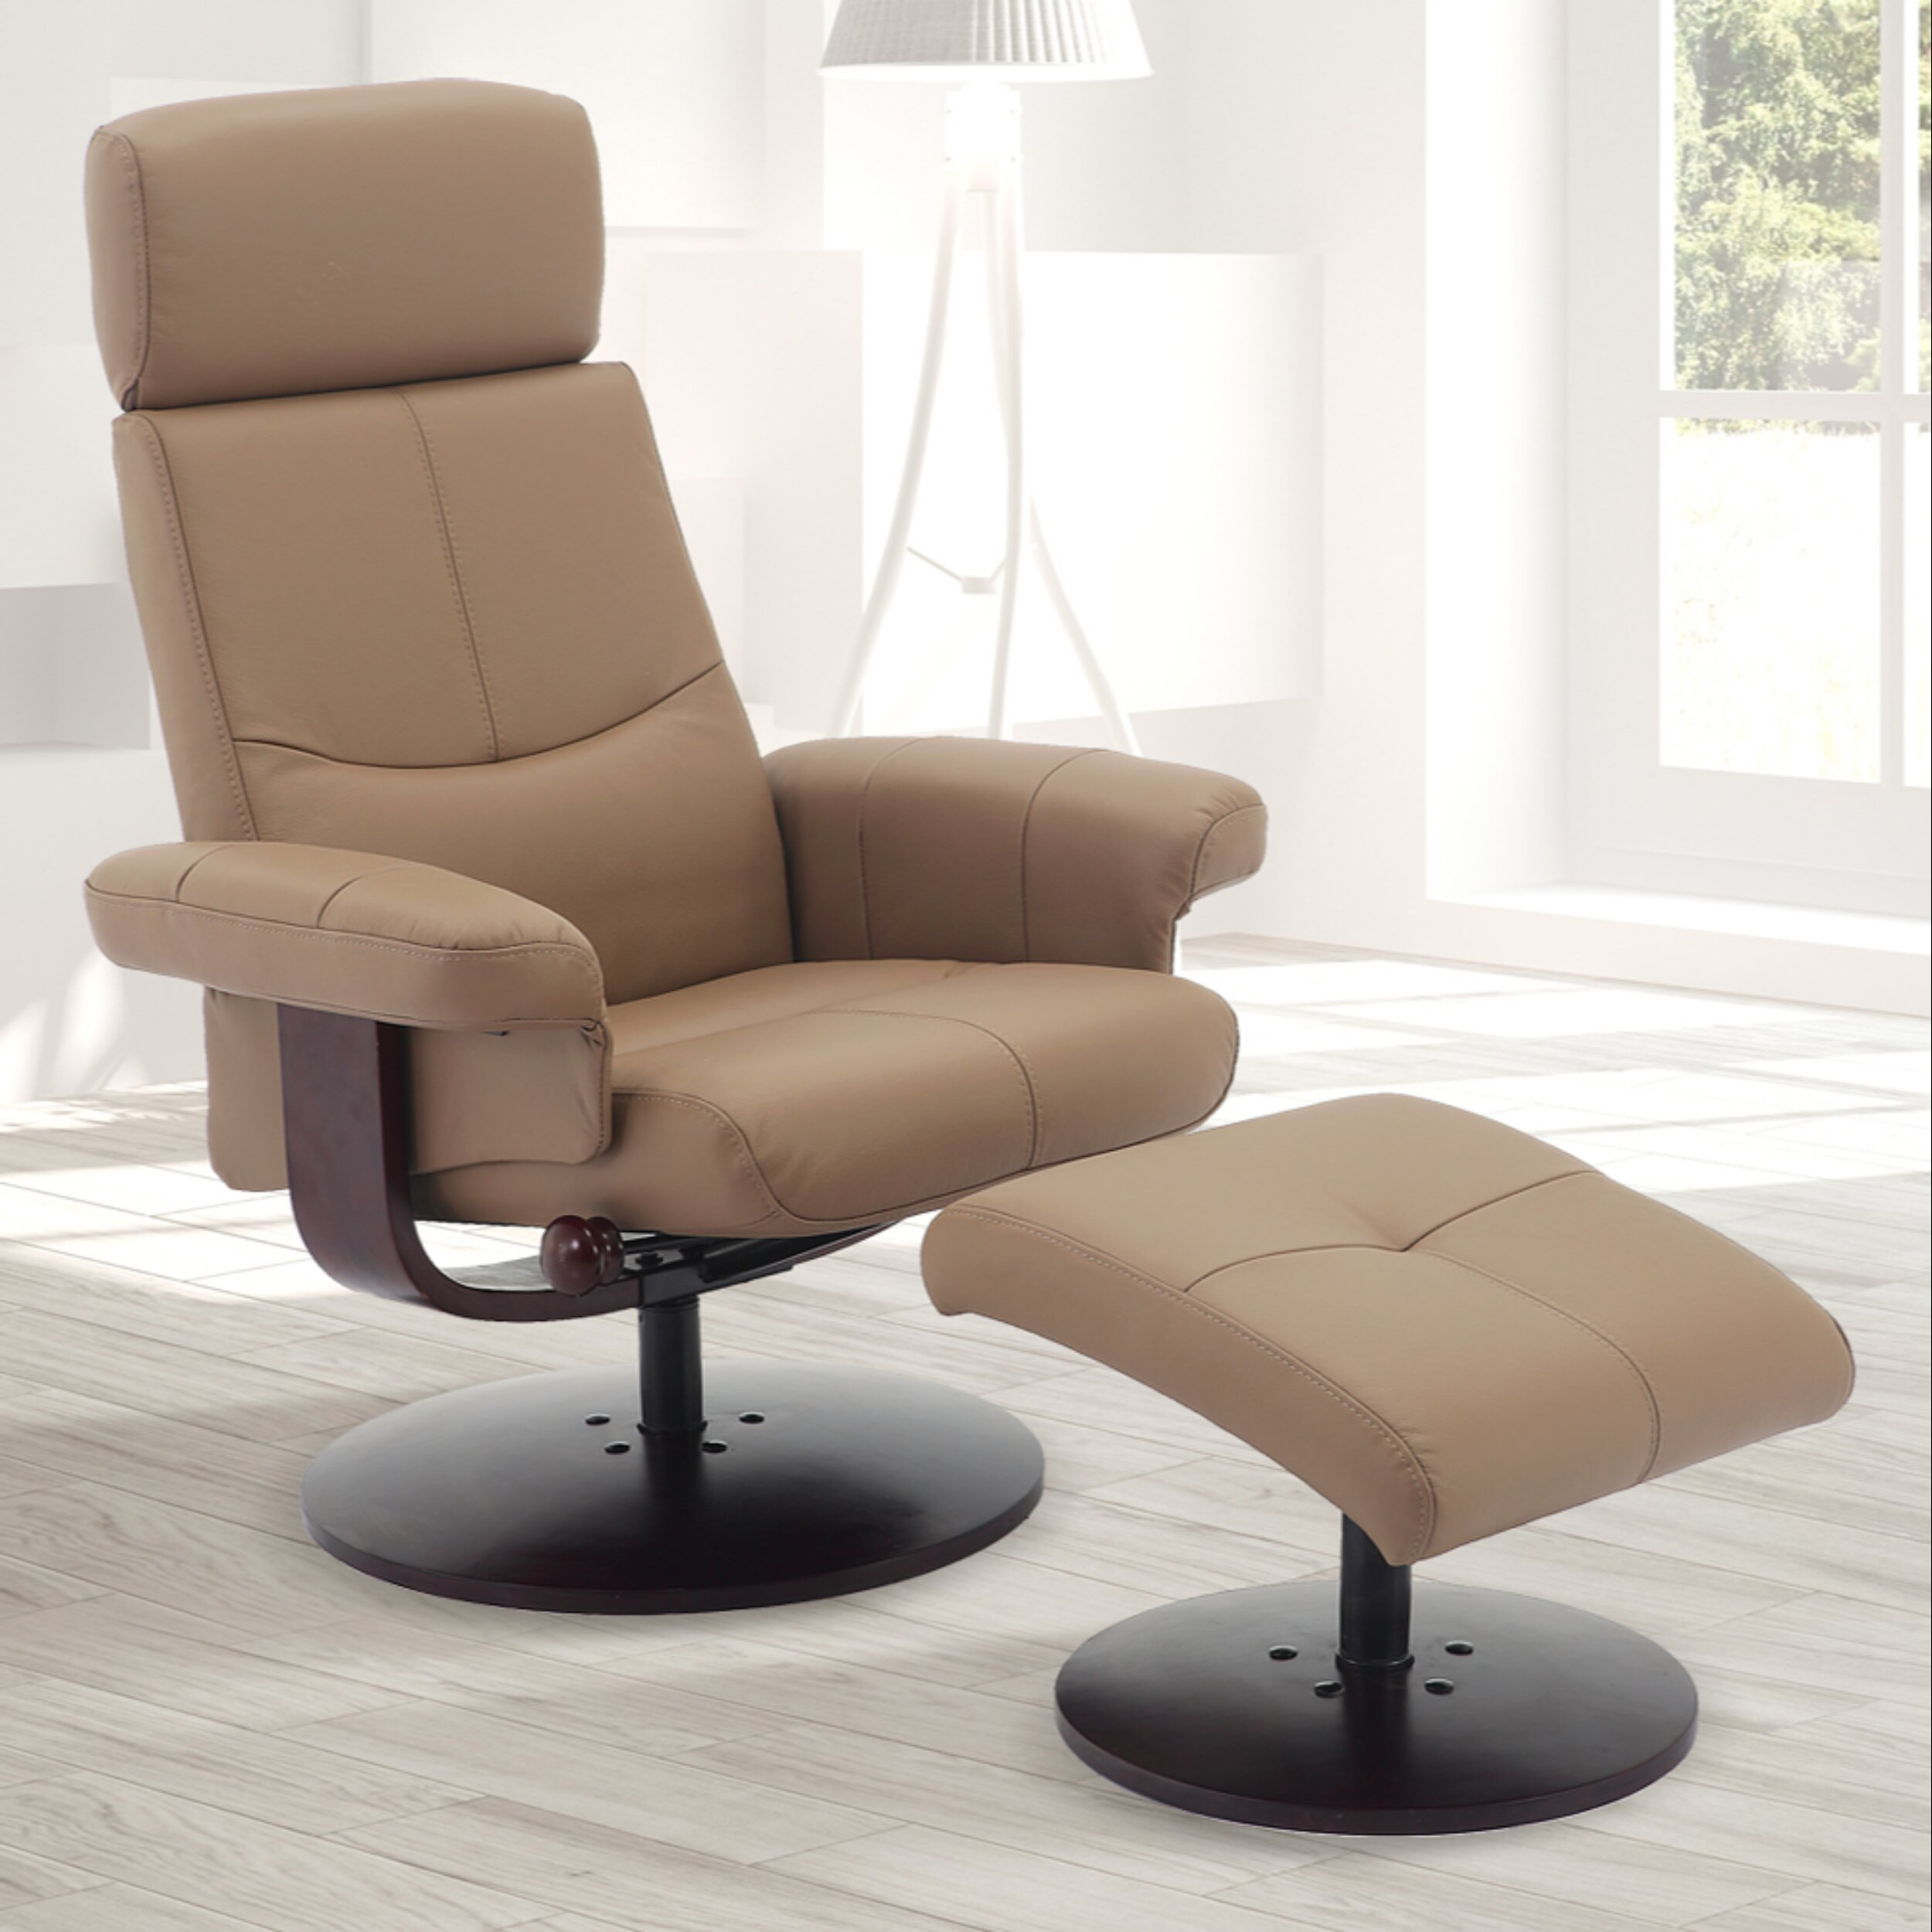 Faux Leather Mid Century Modern Recliners You Ll Love In 2021 Wayfair